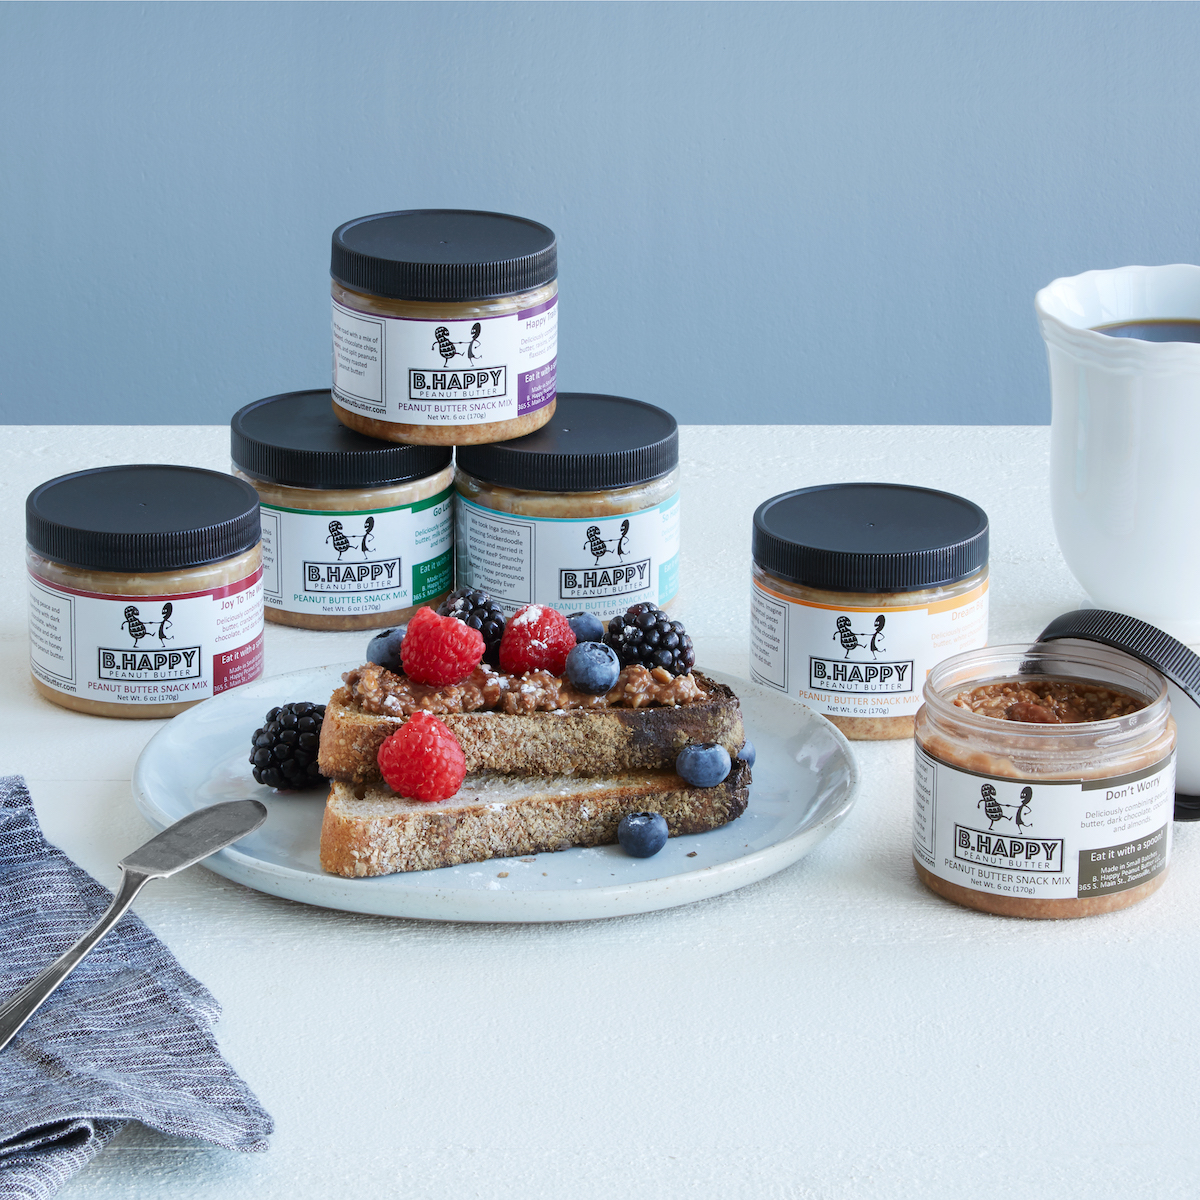 Peanut butter sampler pack as an unusual but great shower gifts for the bride and groom